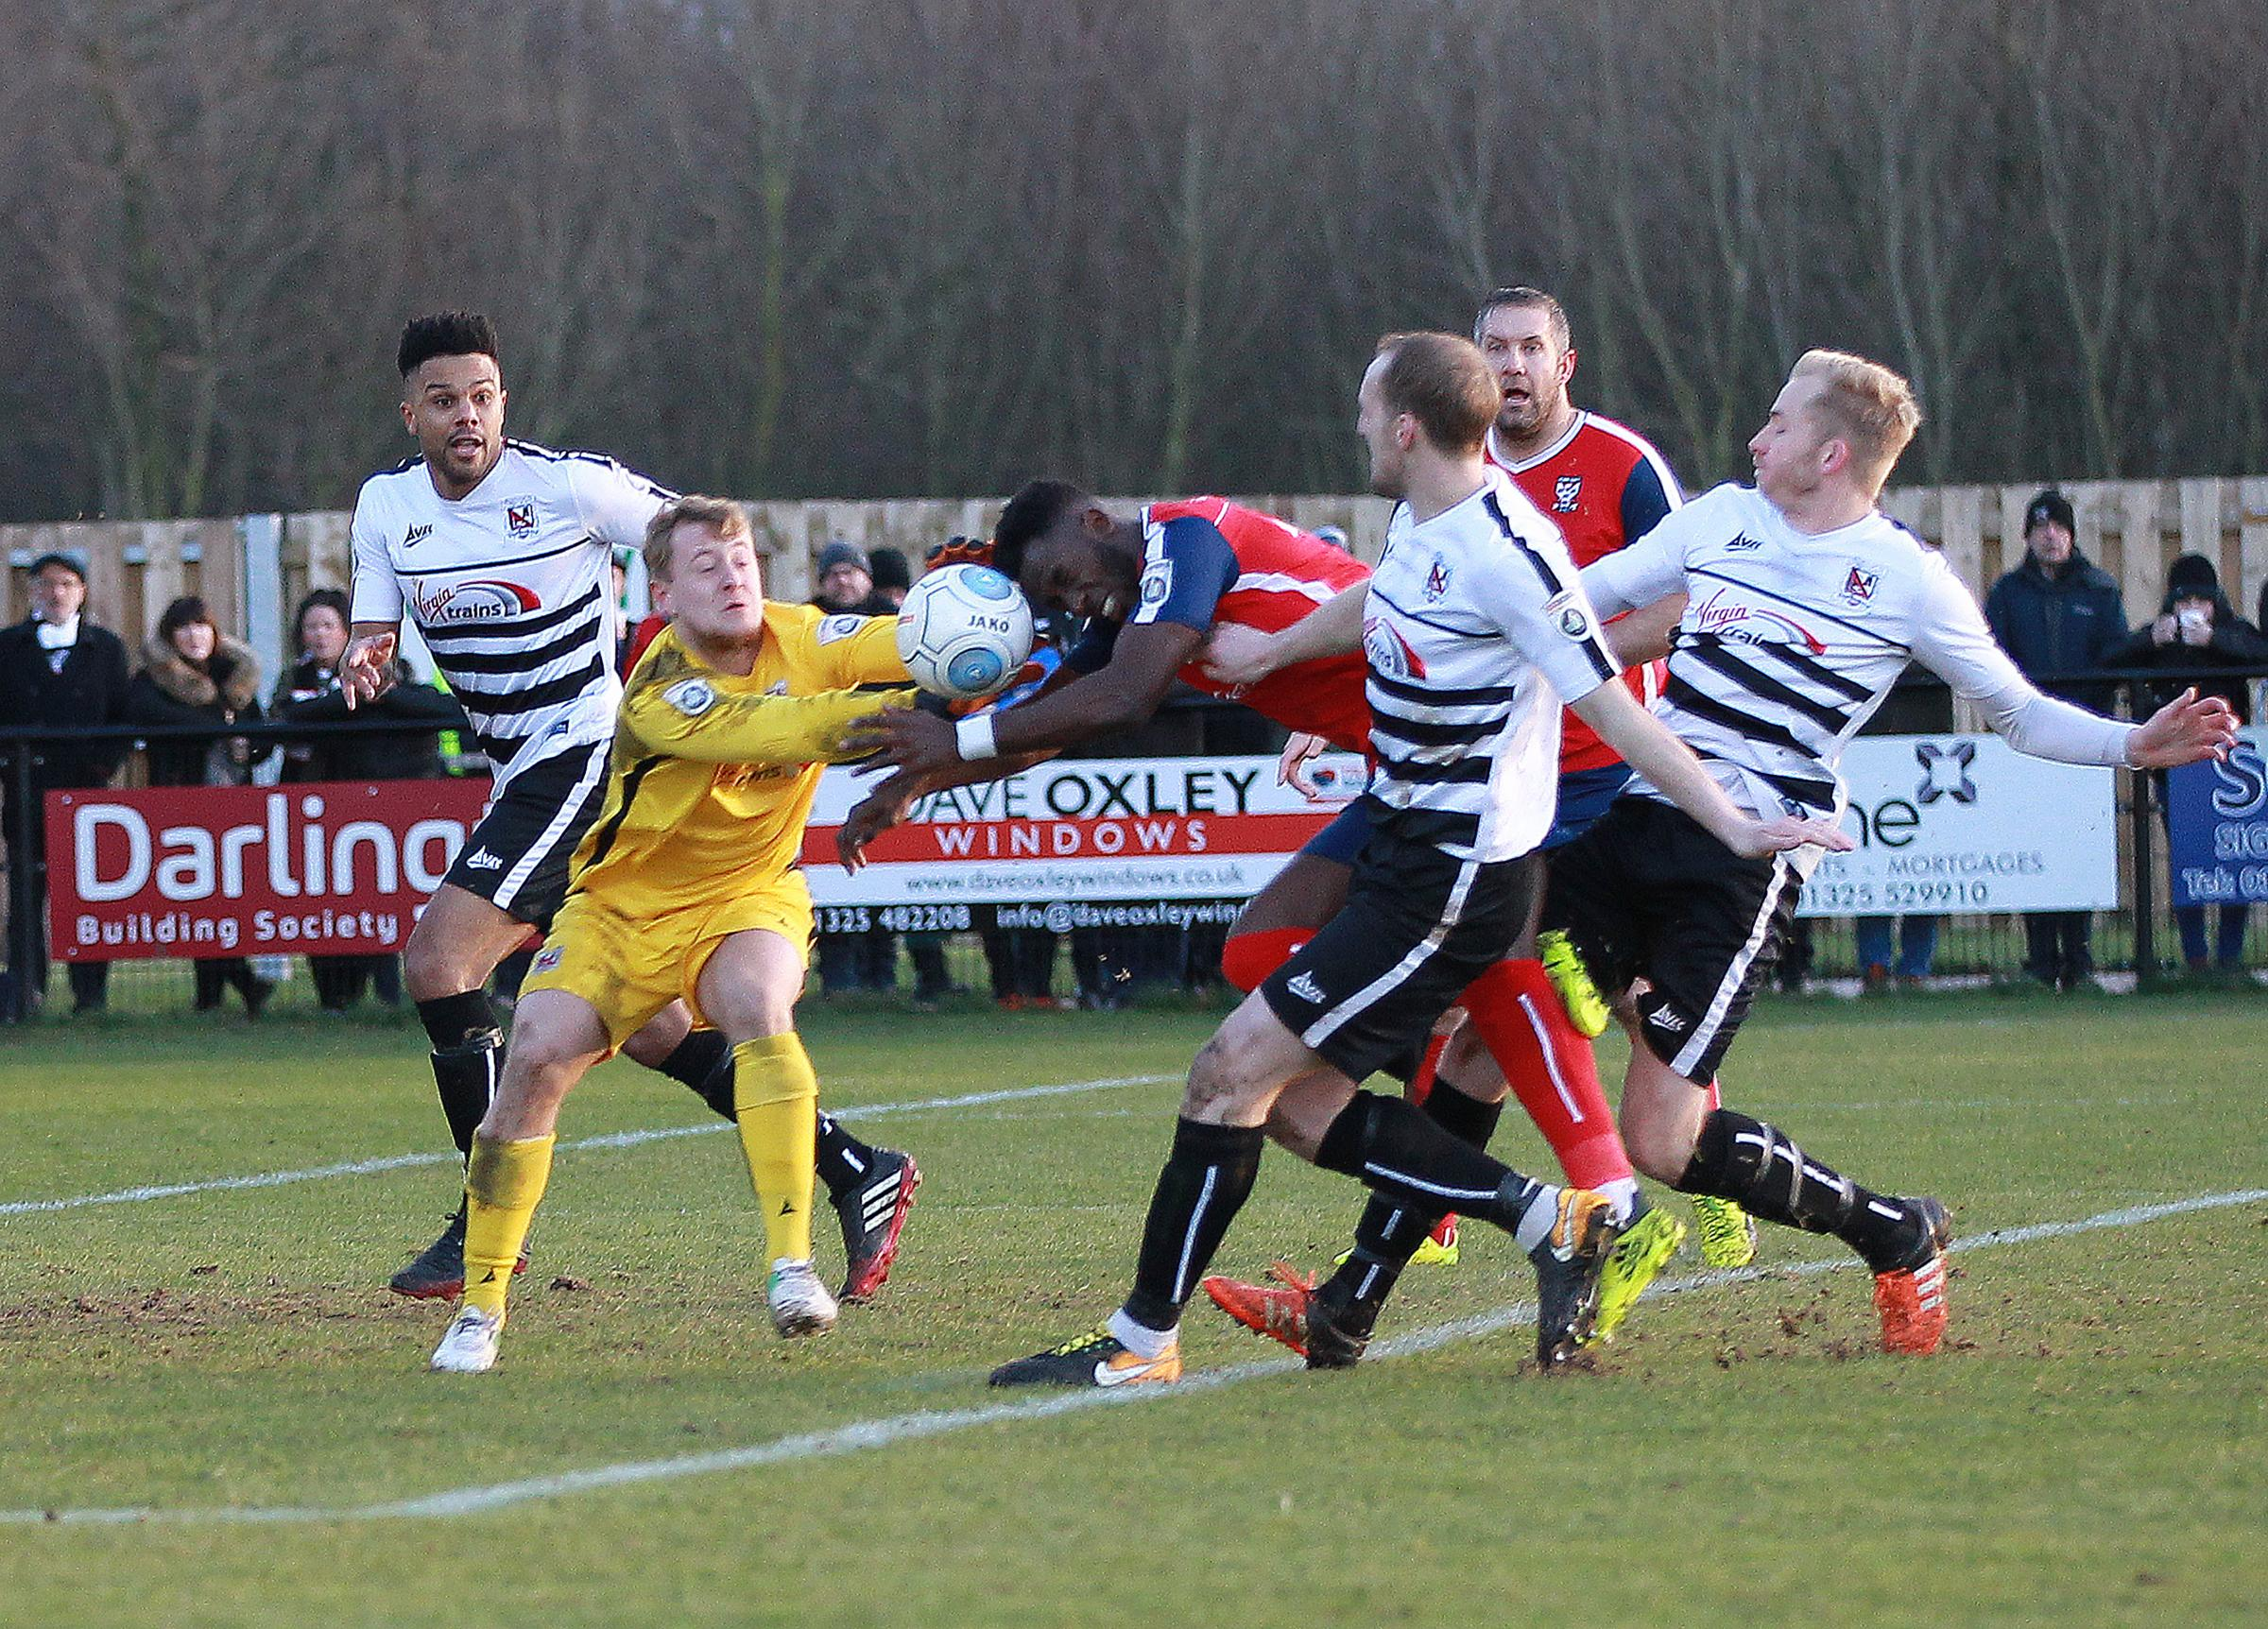 CRUNCH CLASH: York City's Amari Morgan-Smith collides with Darlington keeper James Talbot in the Blackwell Meadows derby contest. Picture: Gordon Clayton